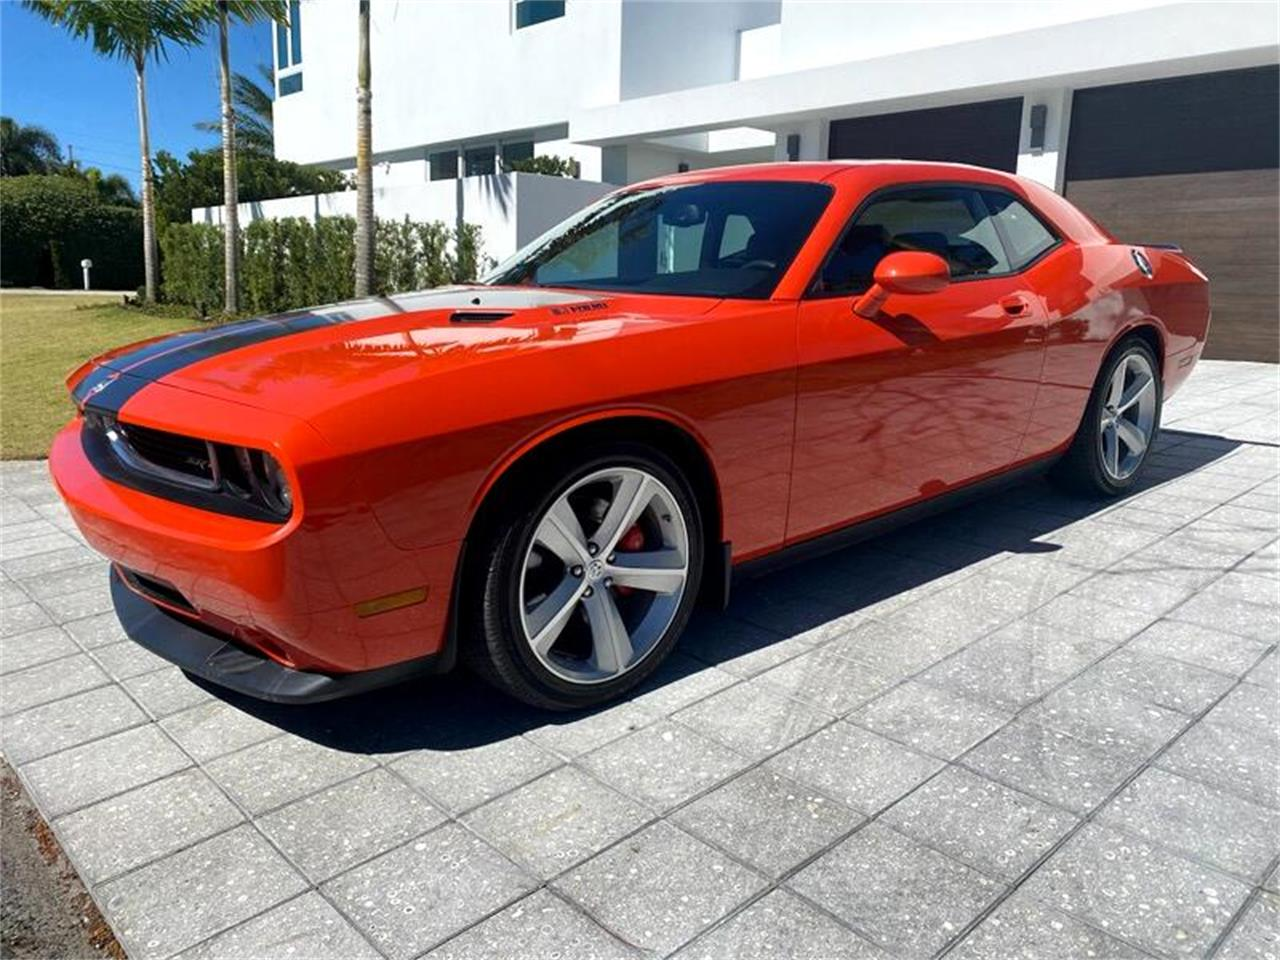 for sale 2008 dodge challenger in delray beach, florida cars - delray beach, fl at geebo